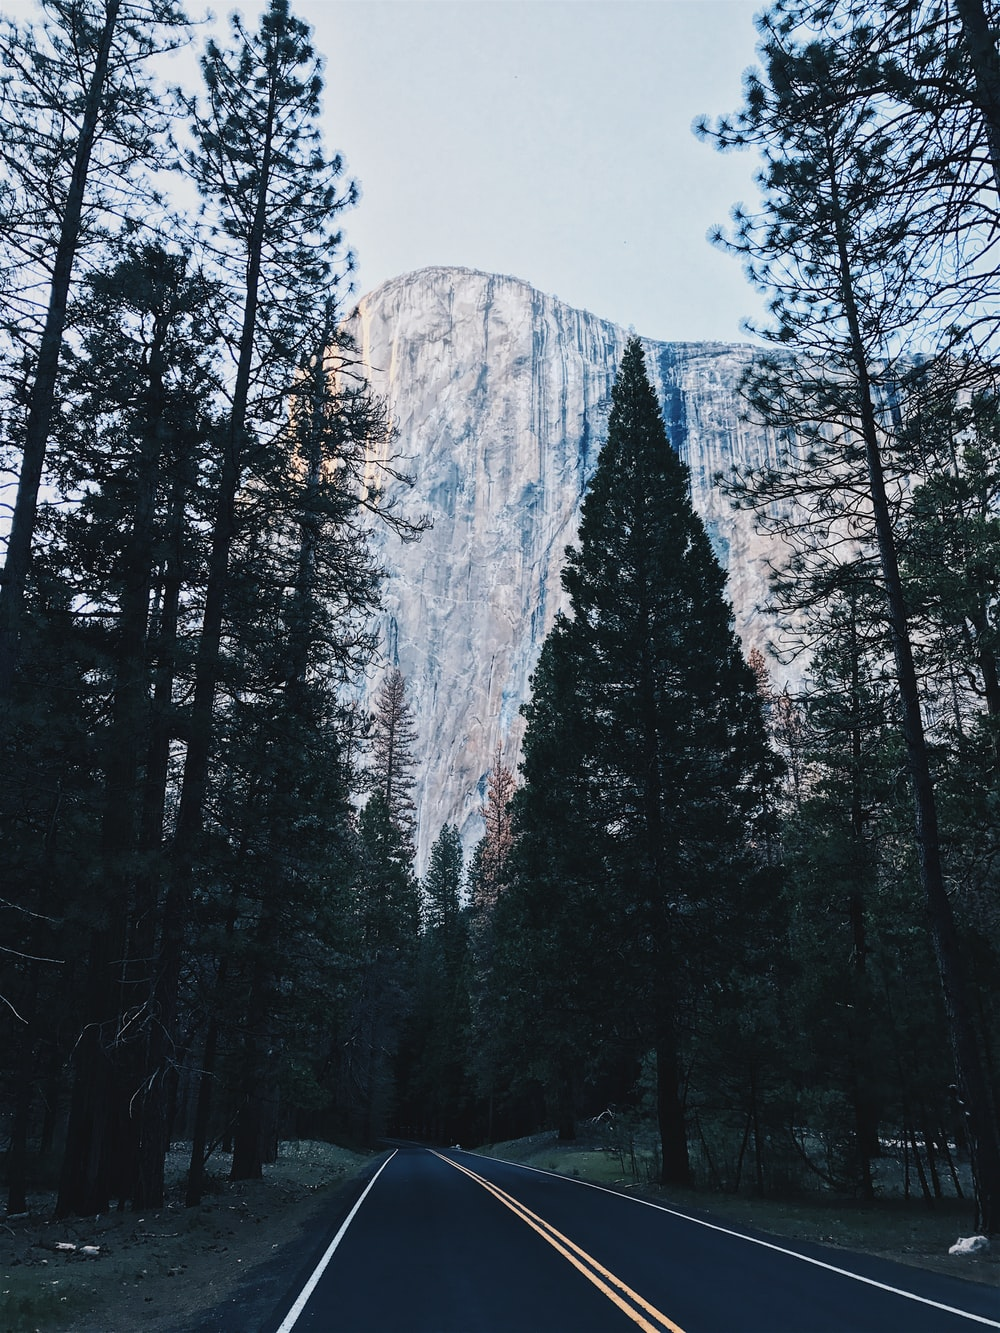 landscape photo of a trees and mountain